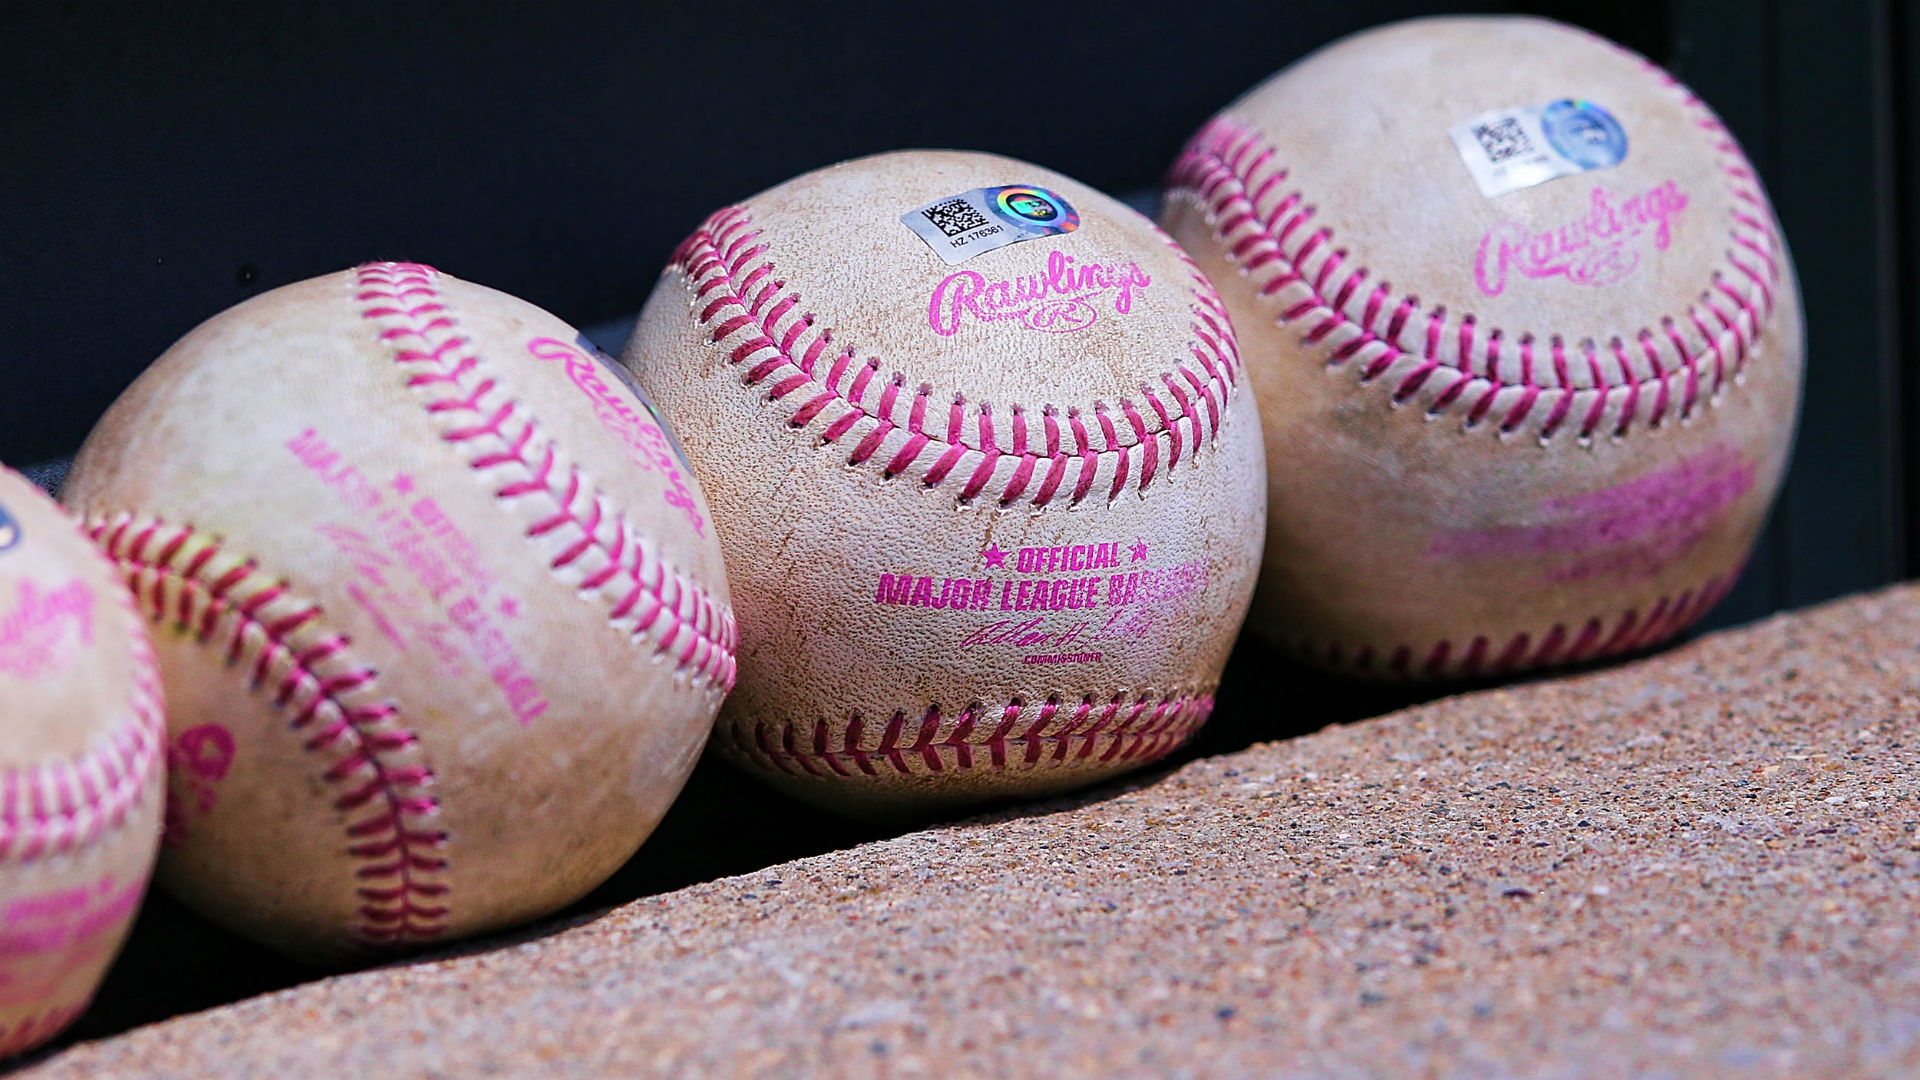 mlb good to highlight breast cancer, but mother's day is so much more